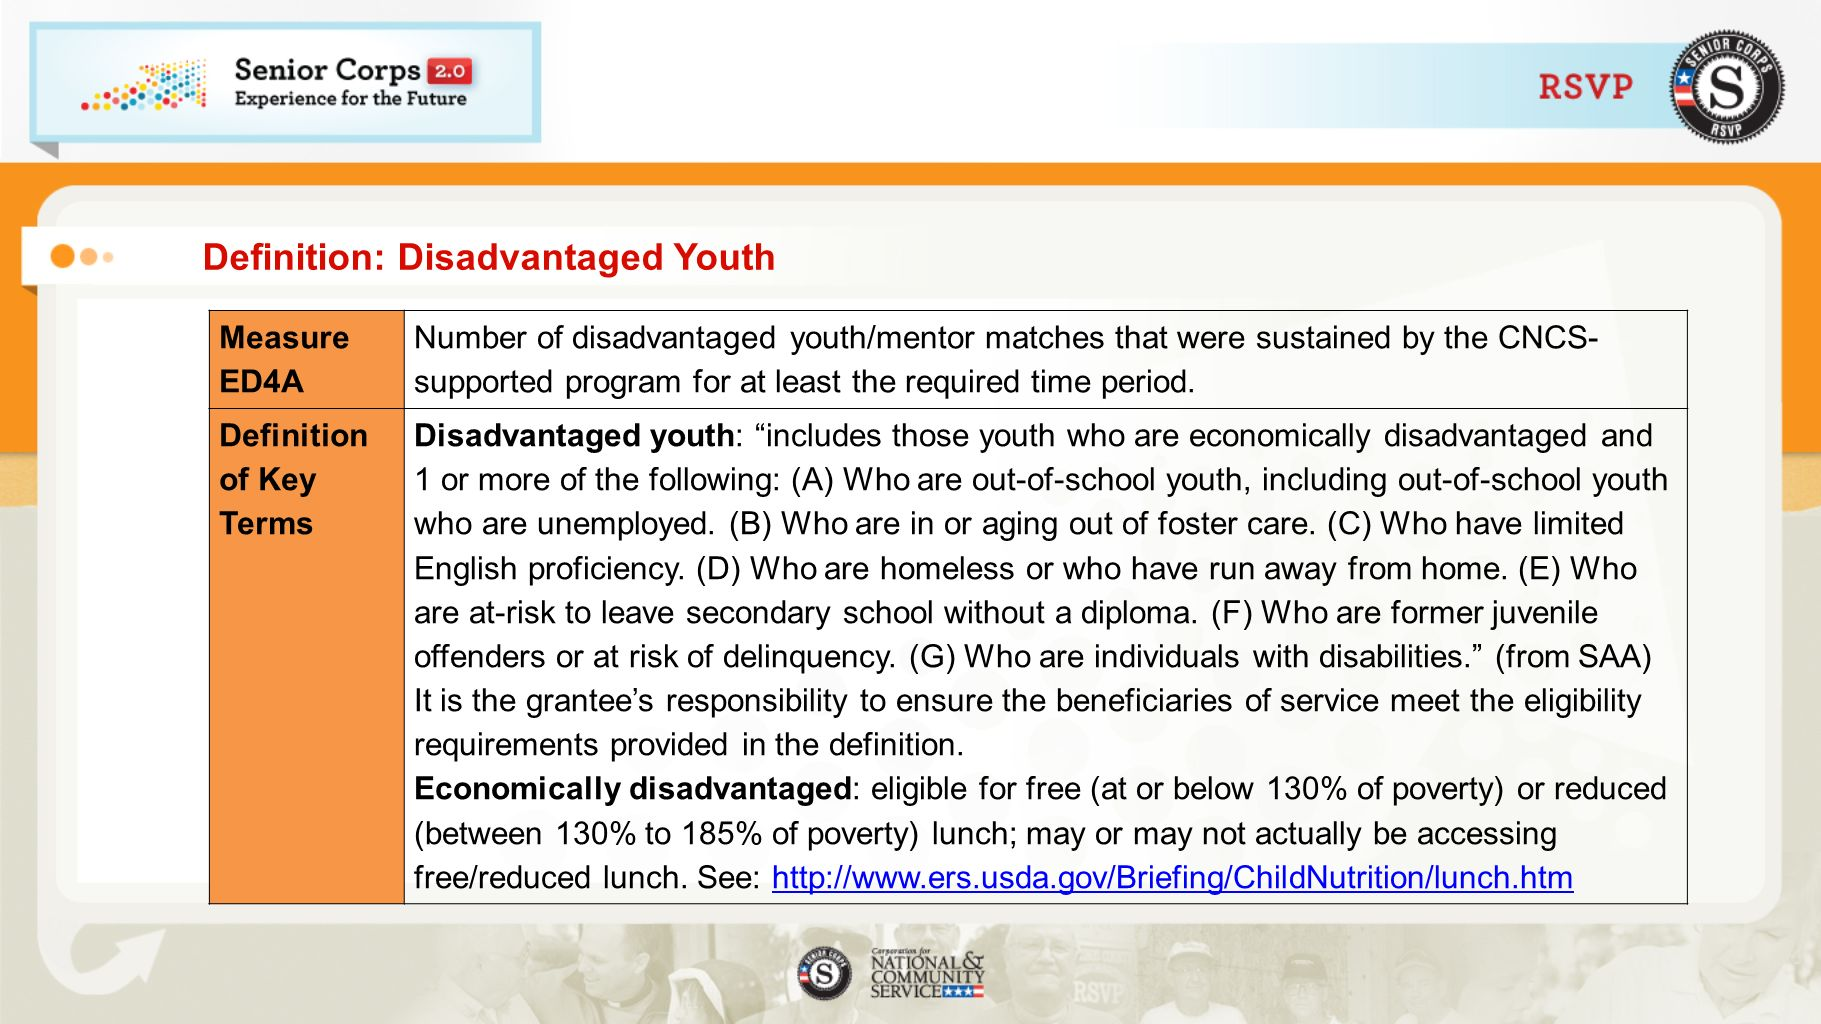 Definition: Disadvantaged Youth